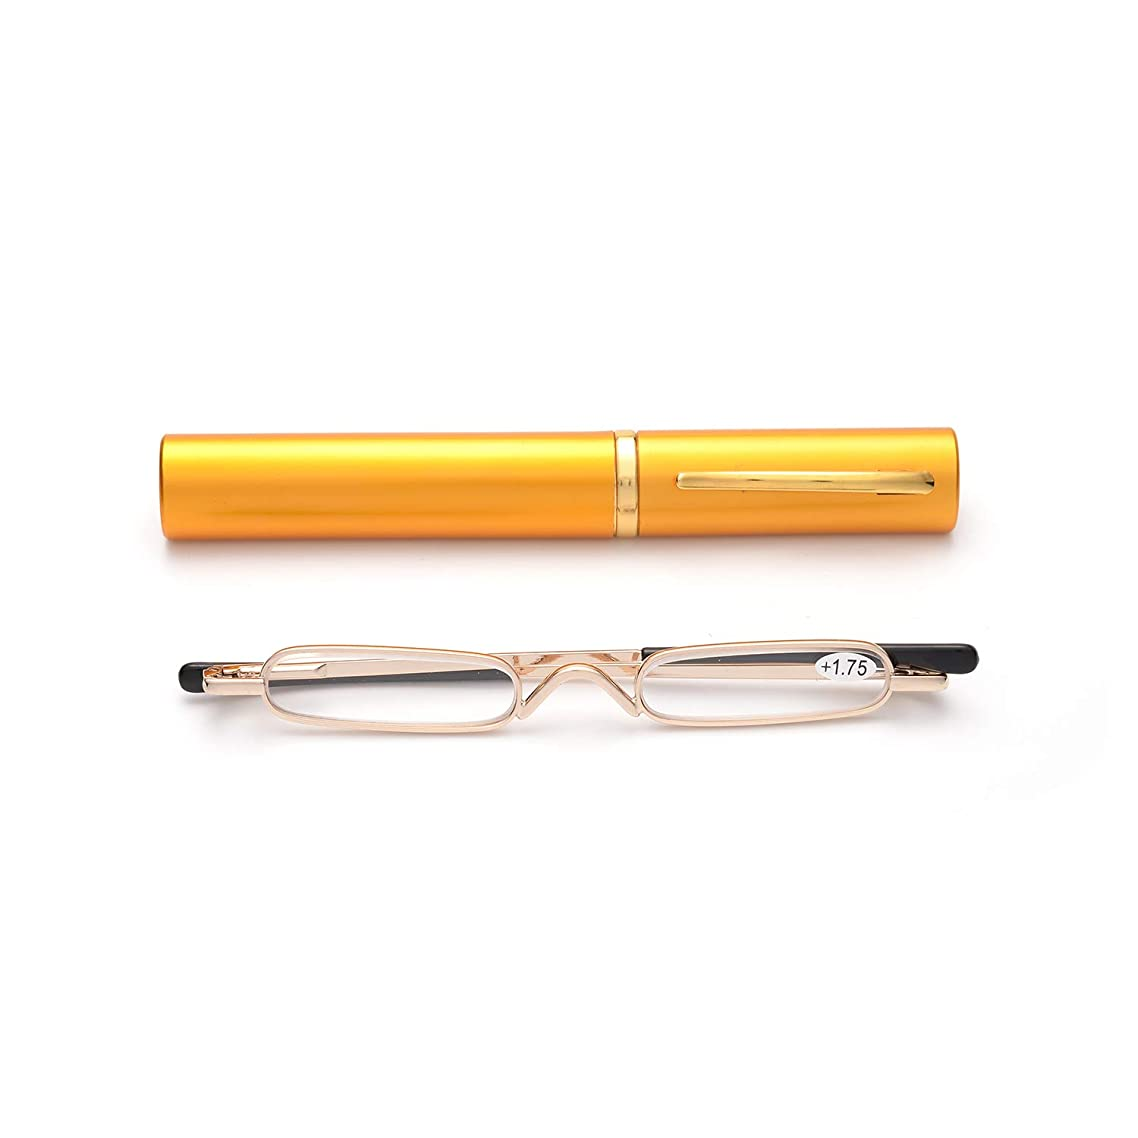 Easy Carry Mini Compact Slim Reading Glasses—Lightweight Portable Readers with w/Pen Clip Tube Case